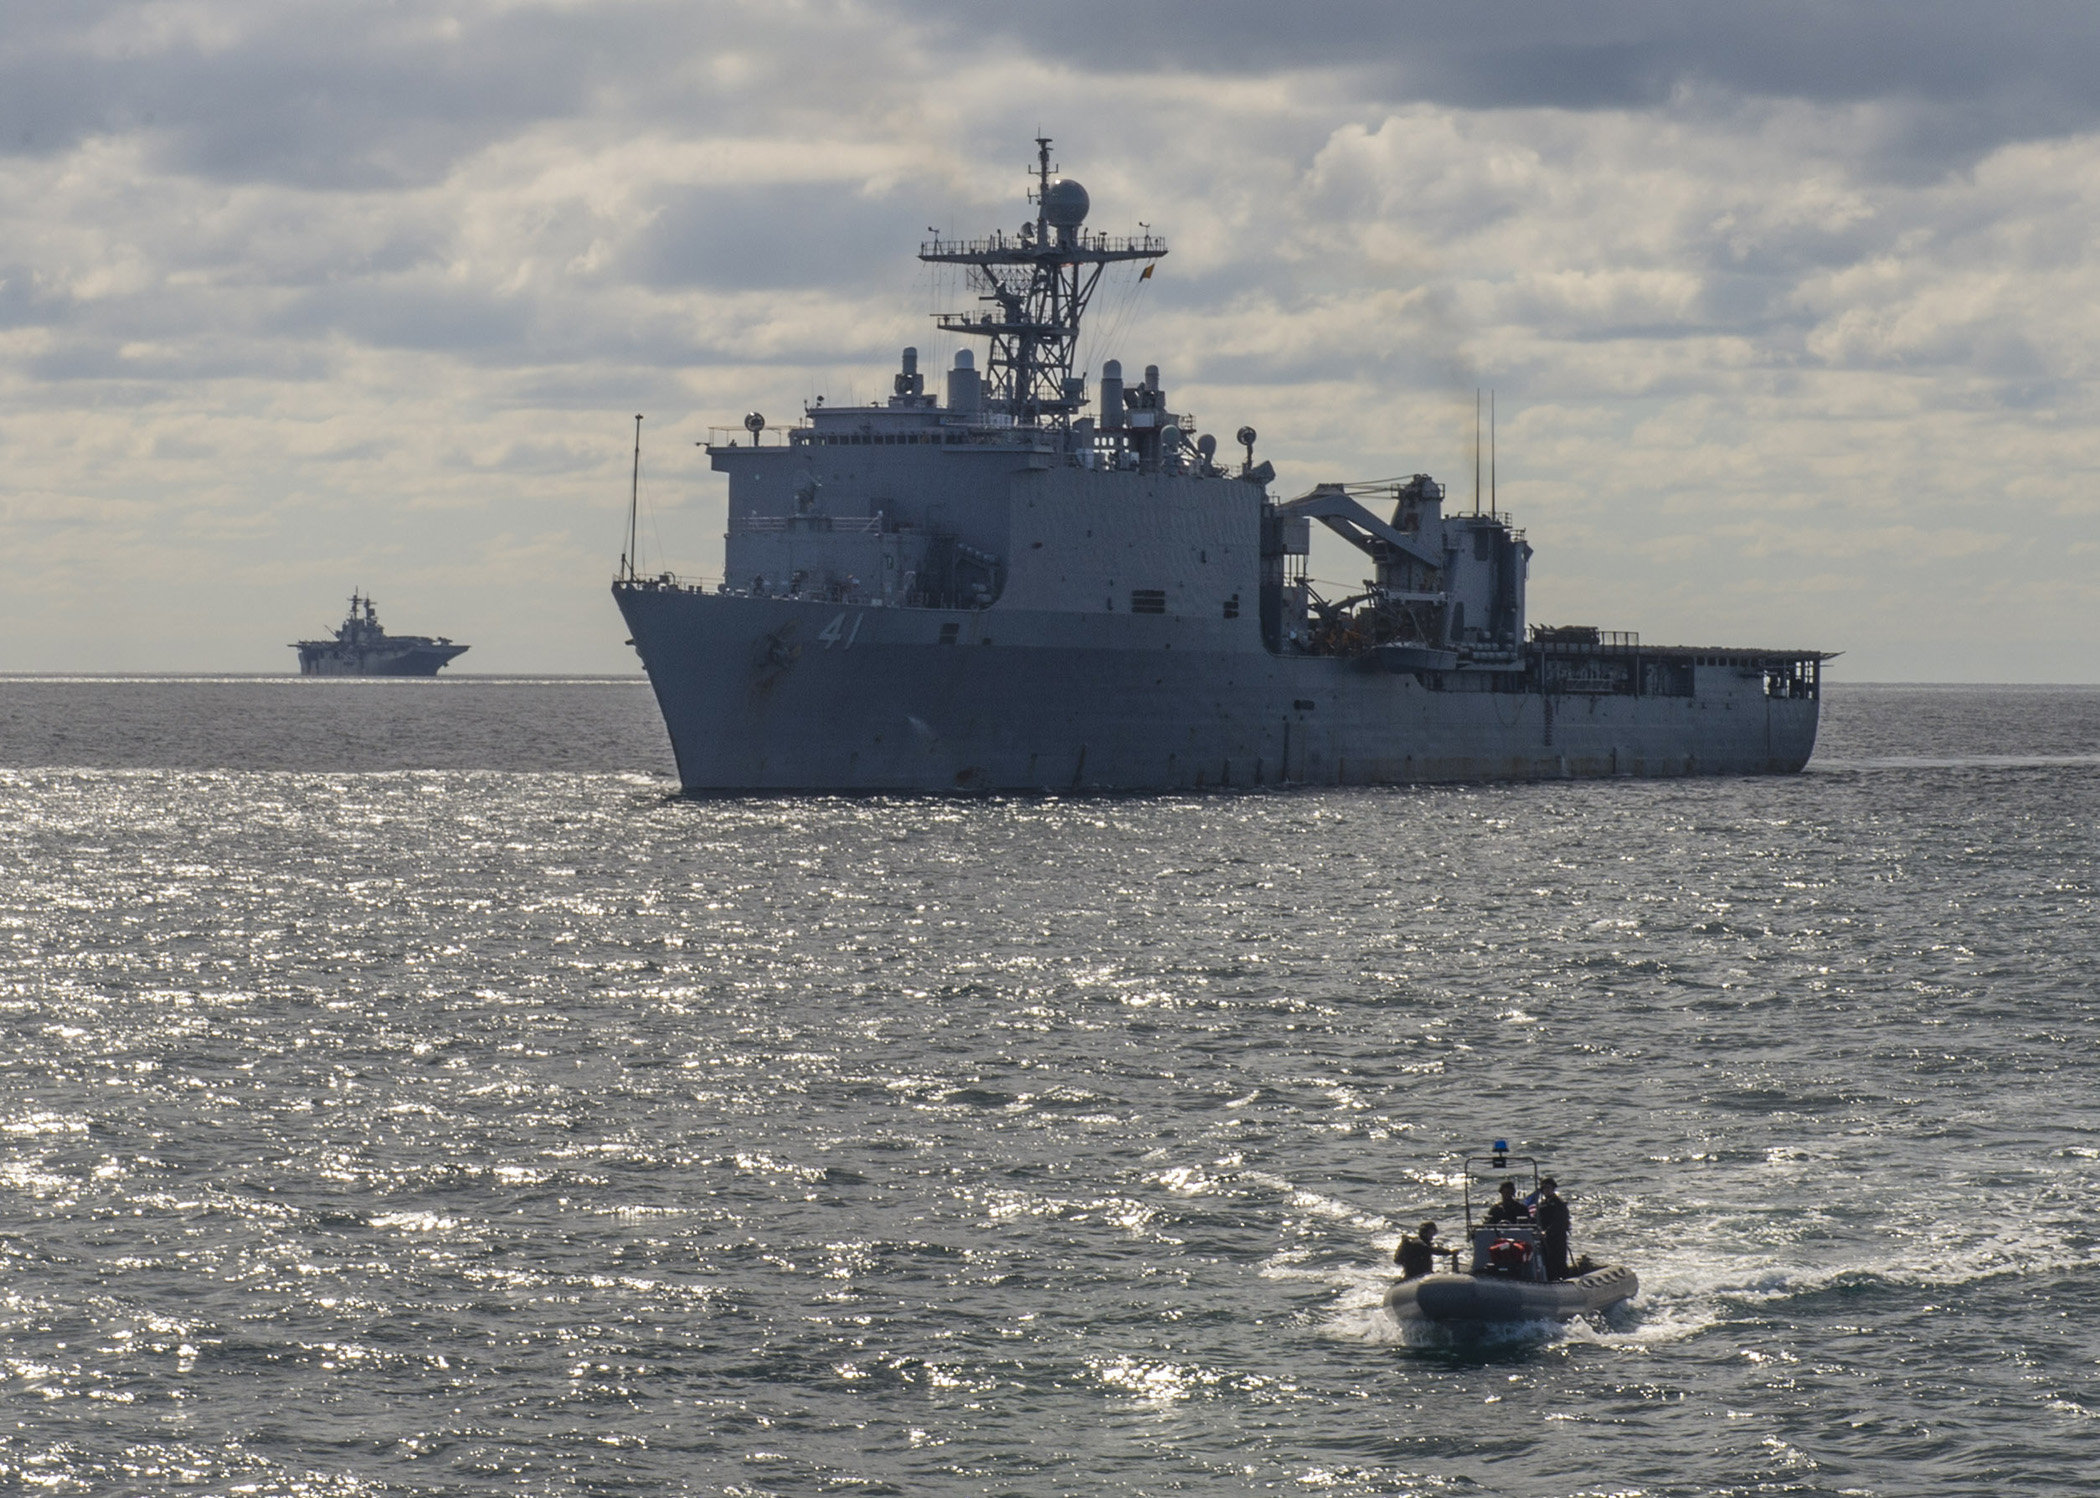 Dock landing ship USS Whidbey Island (LSD 41) conduct small boat operations with the amphibious assault ship USS Wasp (LHD 1)